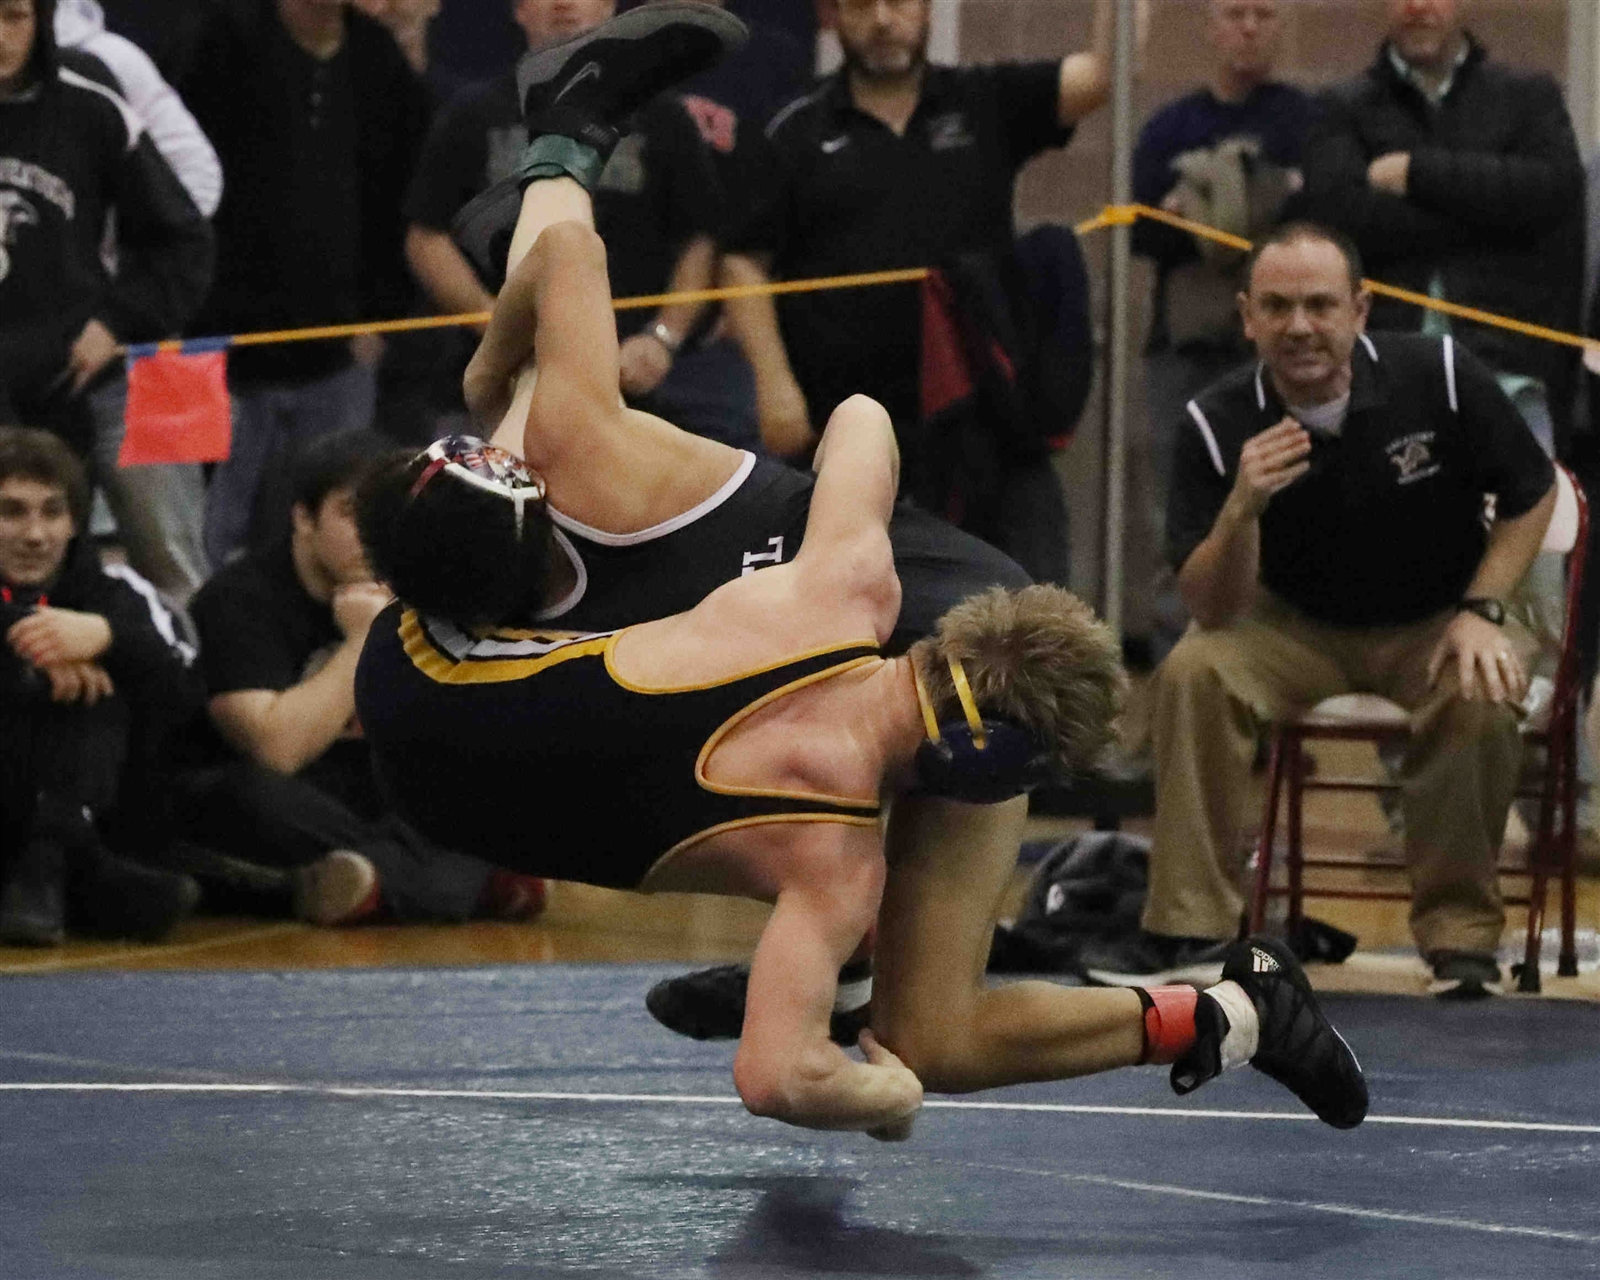 Justin McDougald of Niagara Wheatfield won a close match in the 113-pound class over Mitch Seaver of Lockport, 1-0, to capture his second straight Section VI wrestling title. (James P. McCoy/Buffalo News)